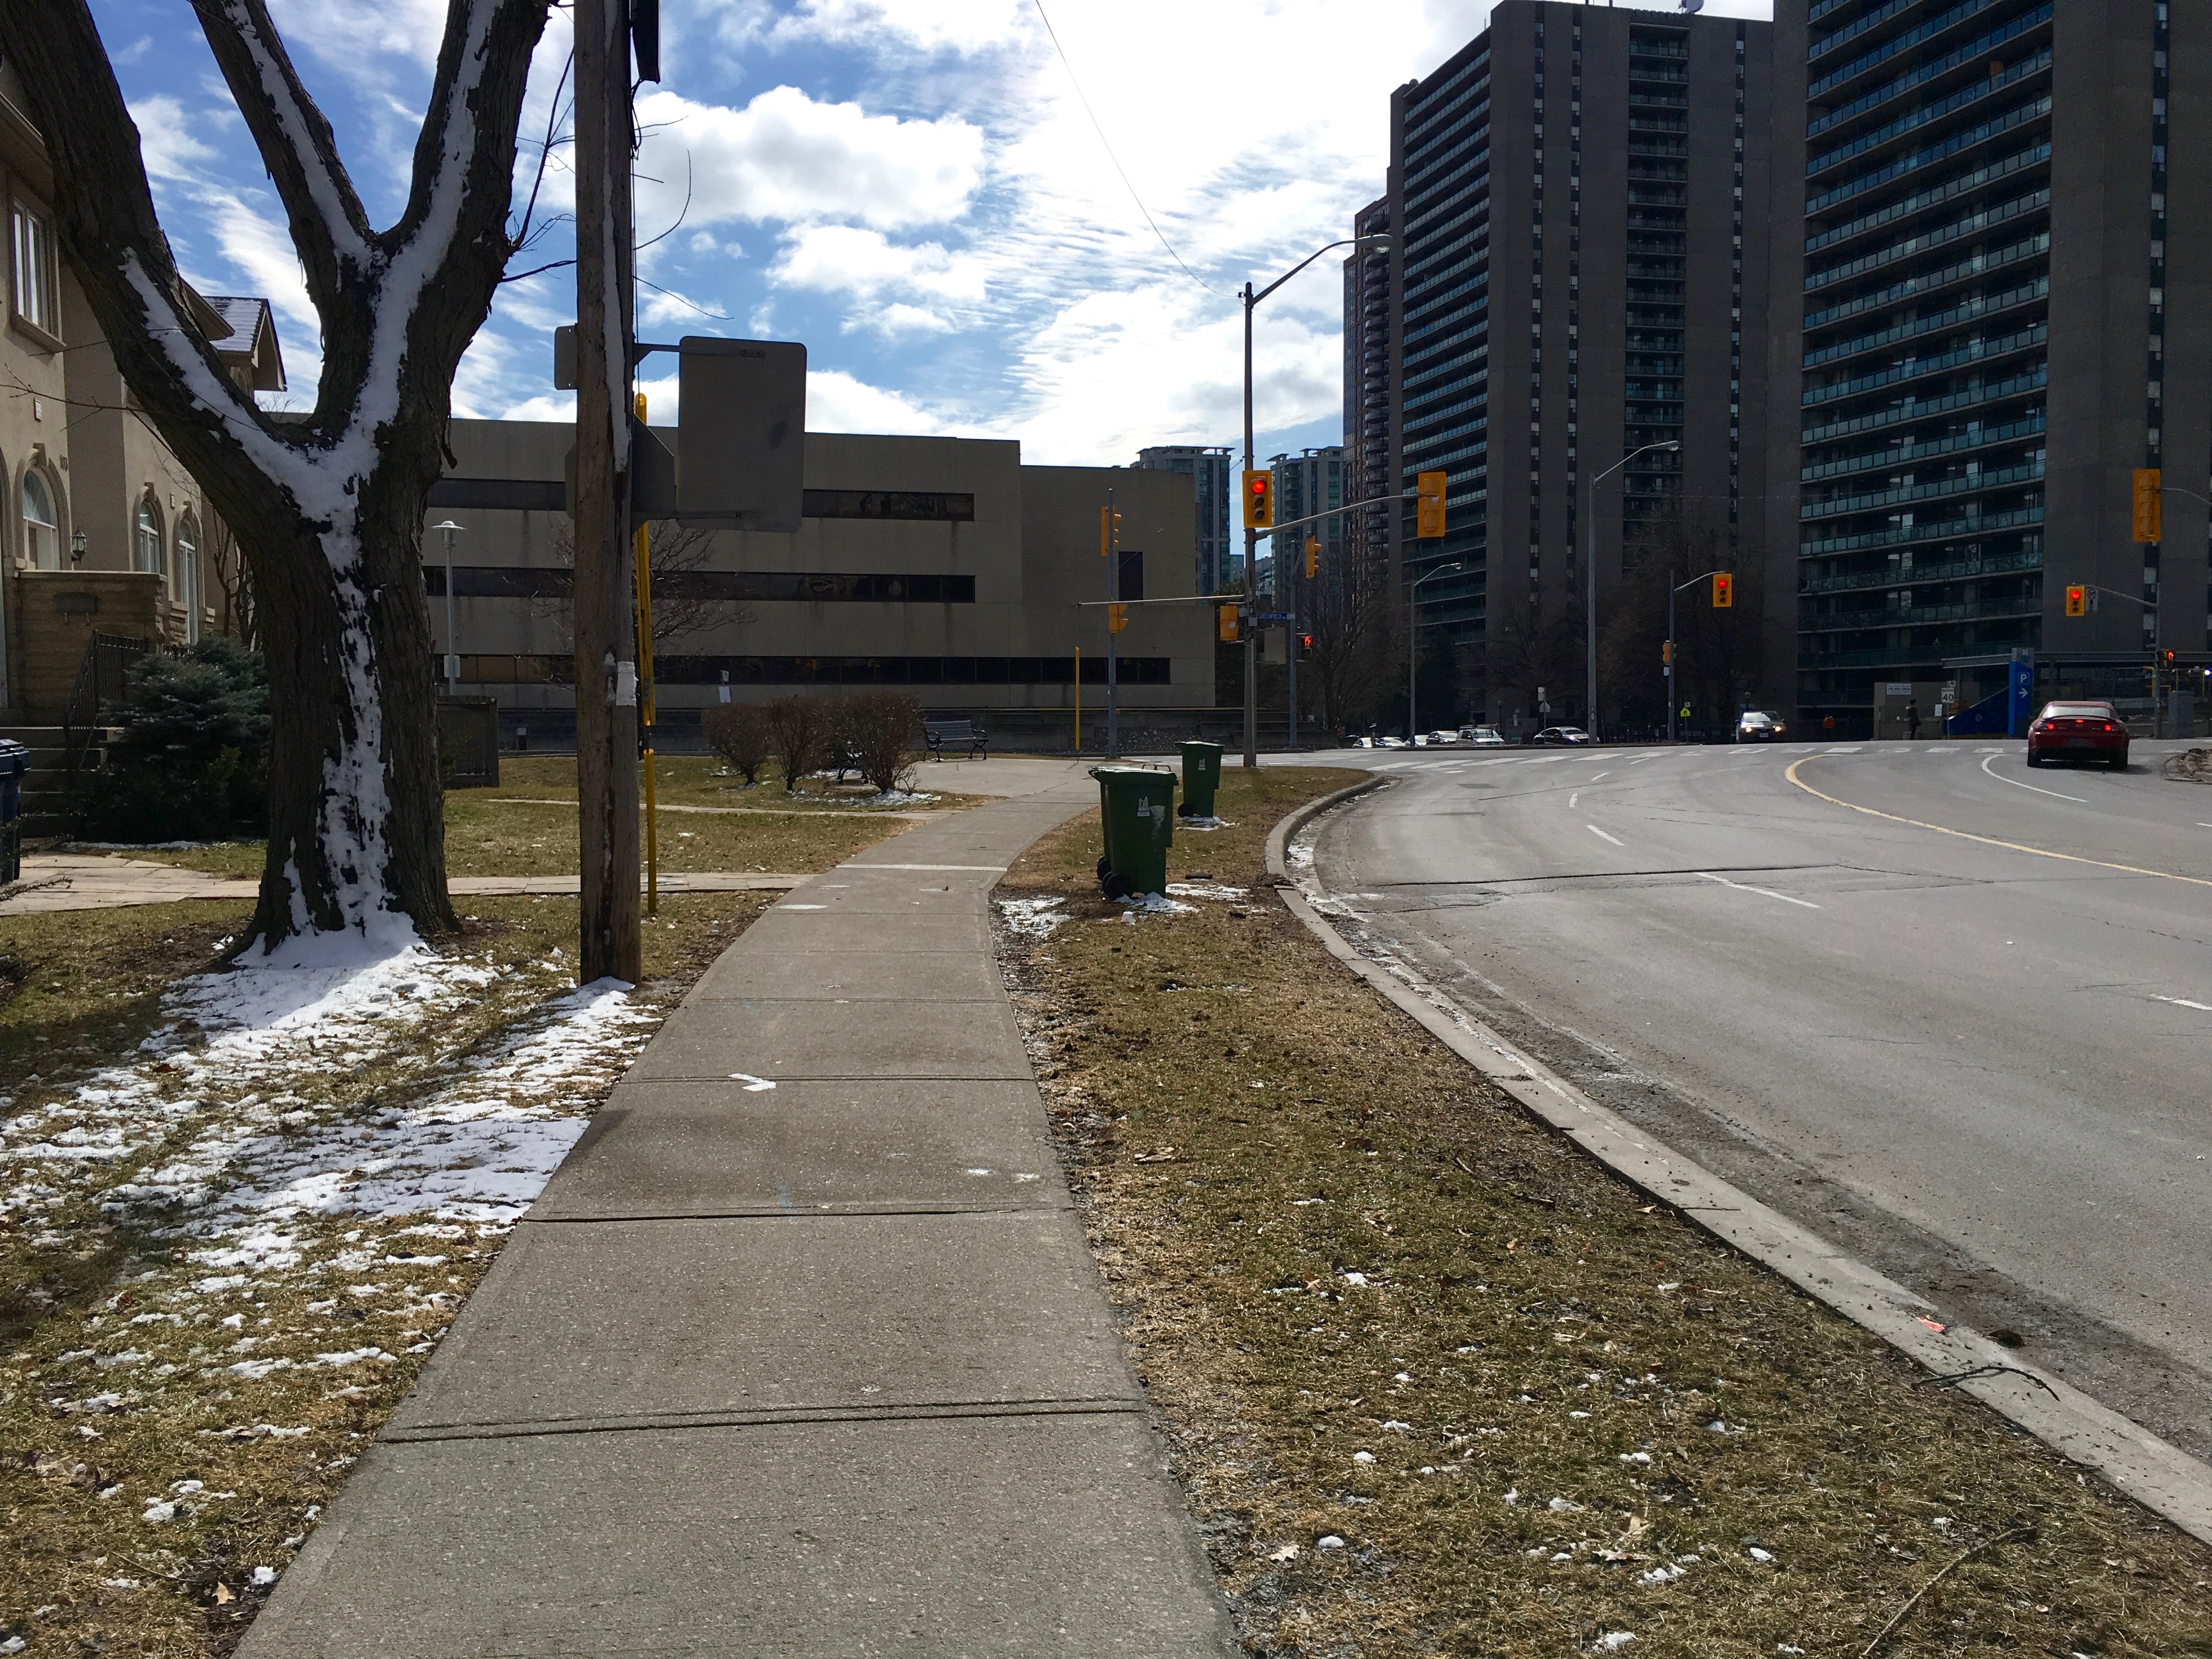 12:31 p.m., March 2, 2018. On the east side of Doris Avenue facing south.